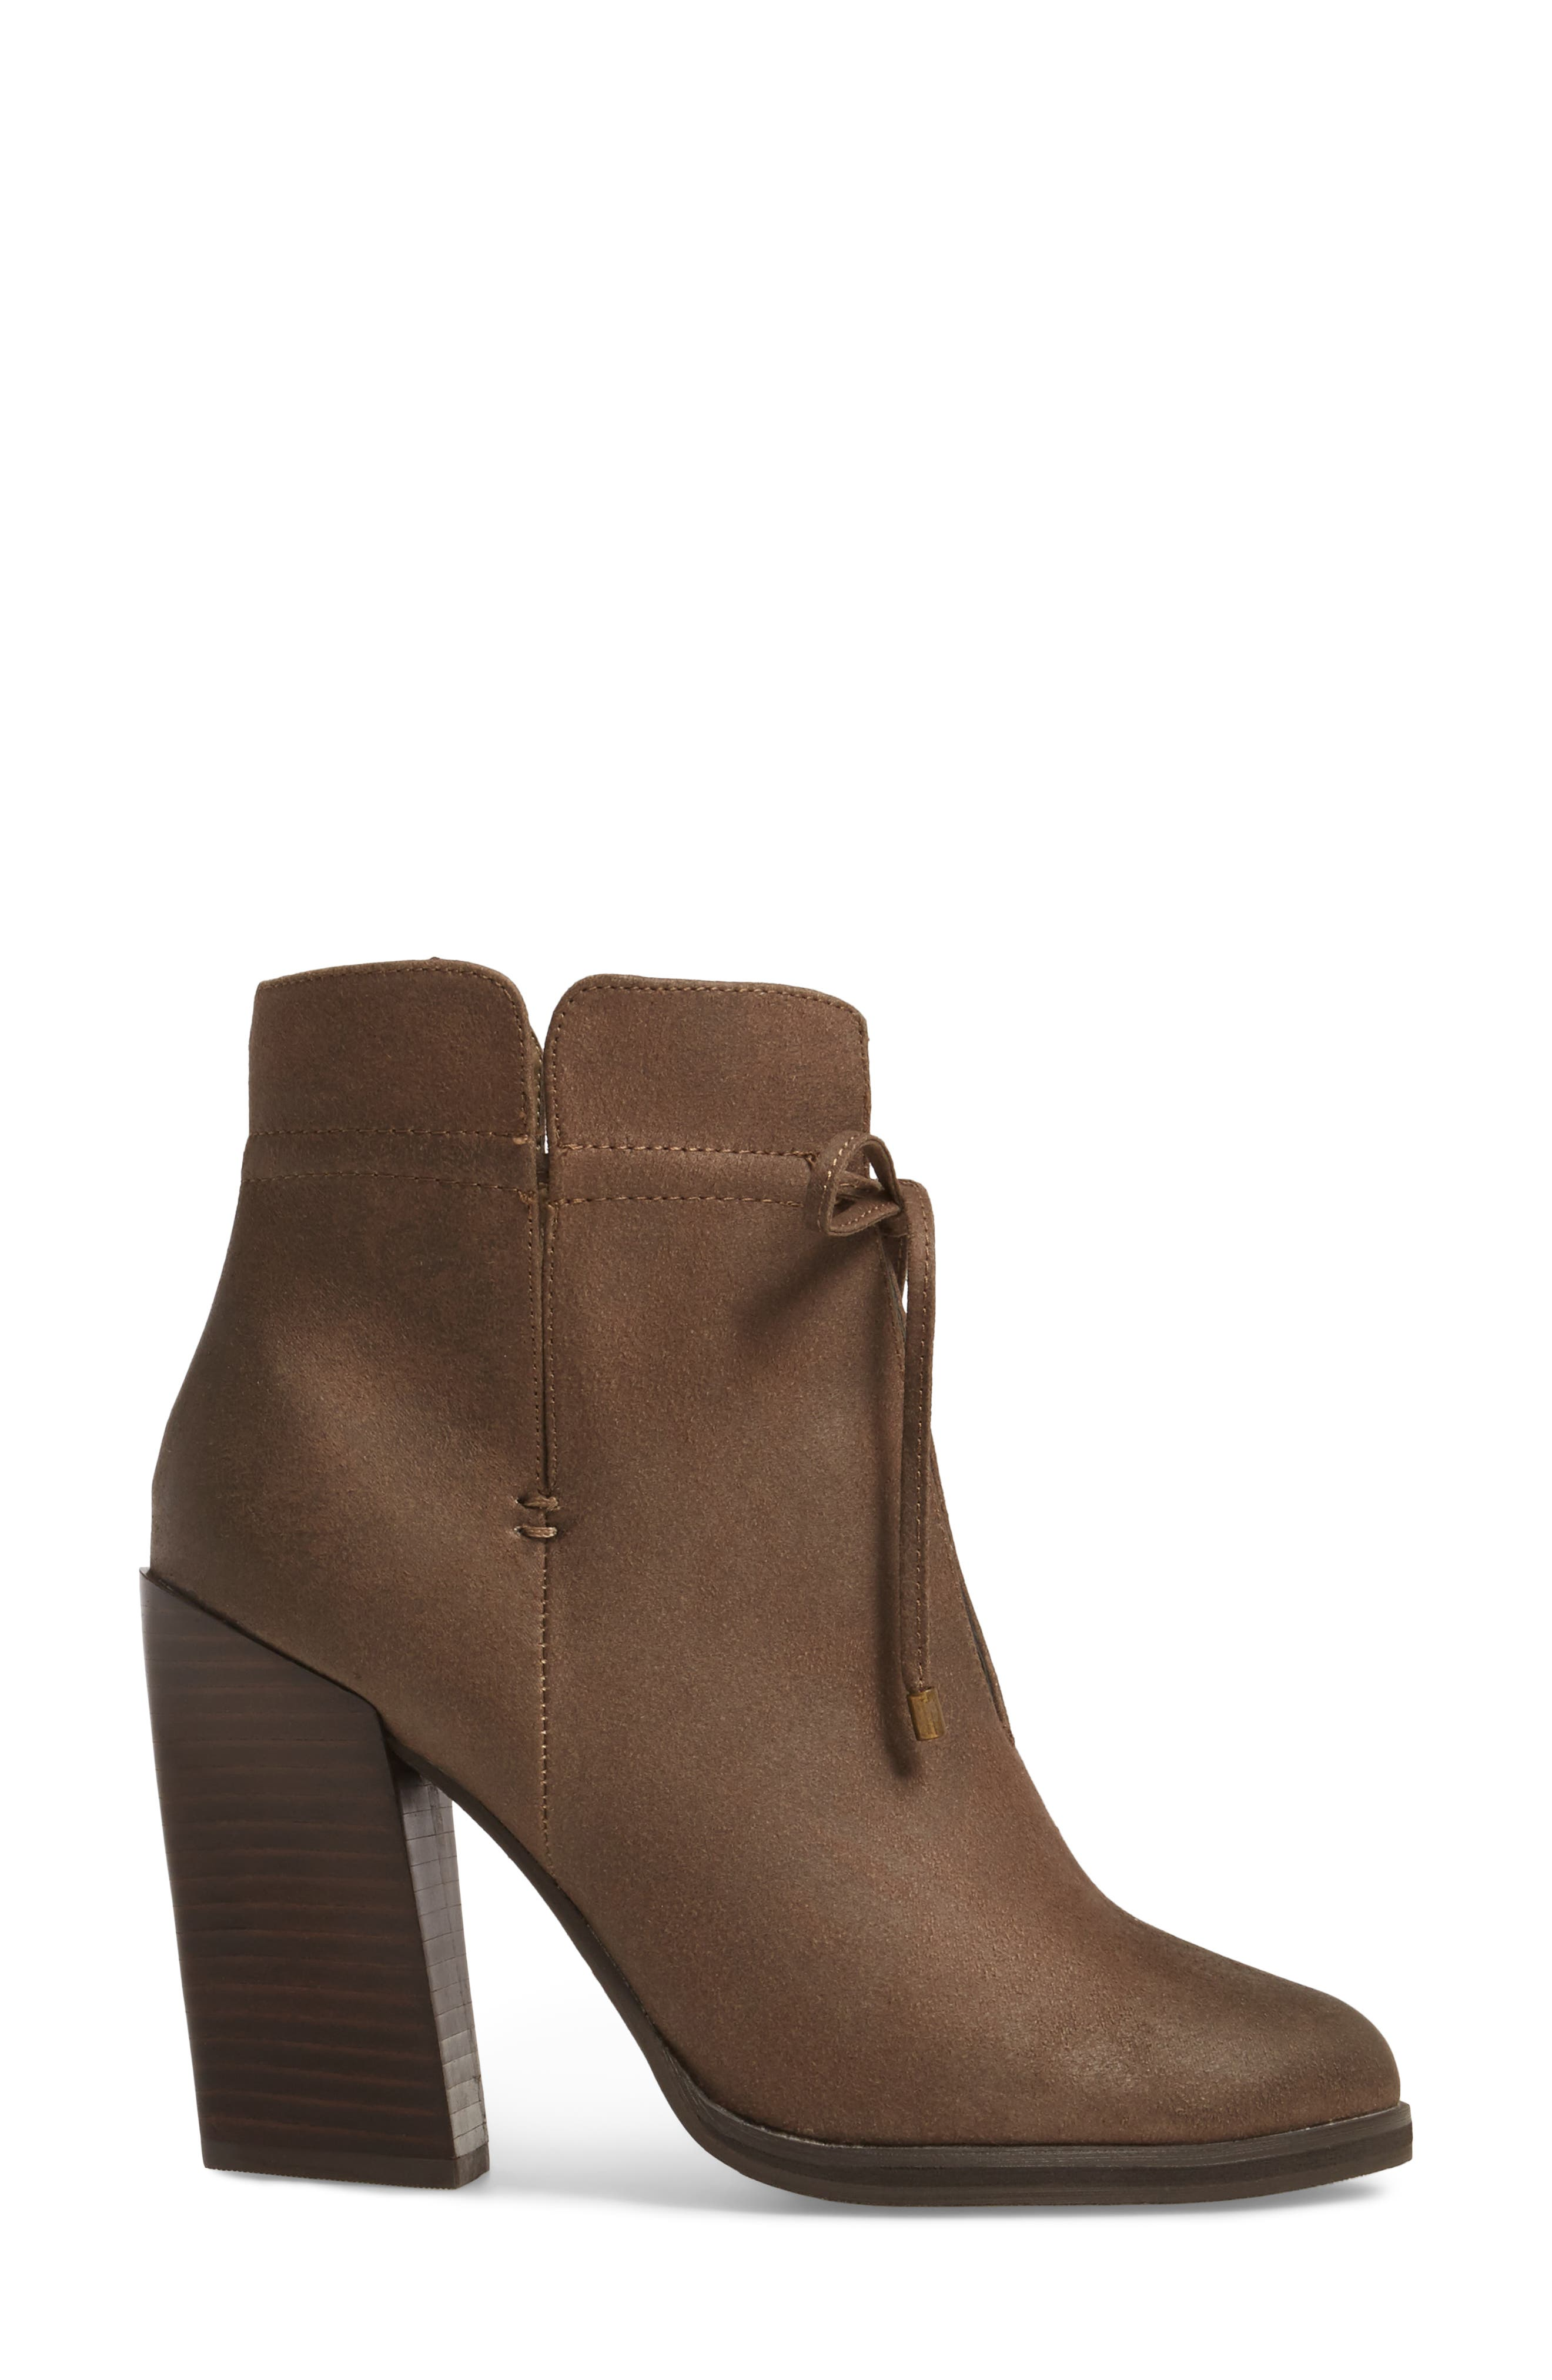 Chick Flick Bootie,                             Alternate thumbnail 3, color,                             Taupe Faux Leather